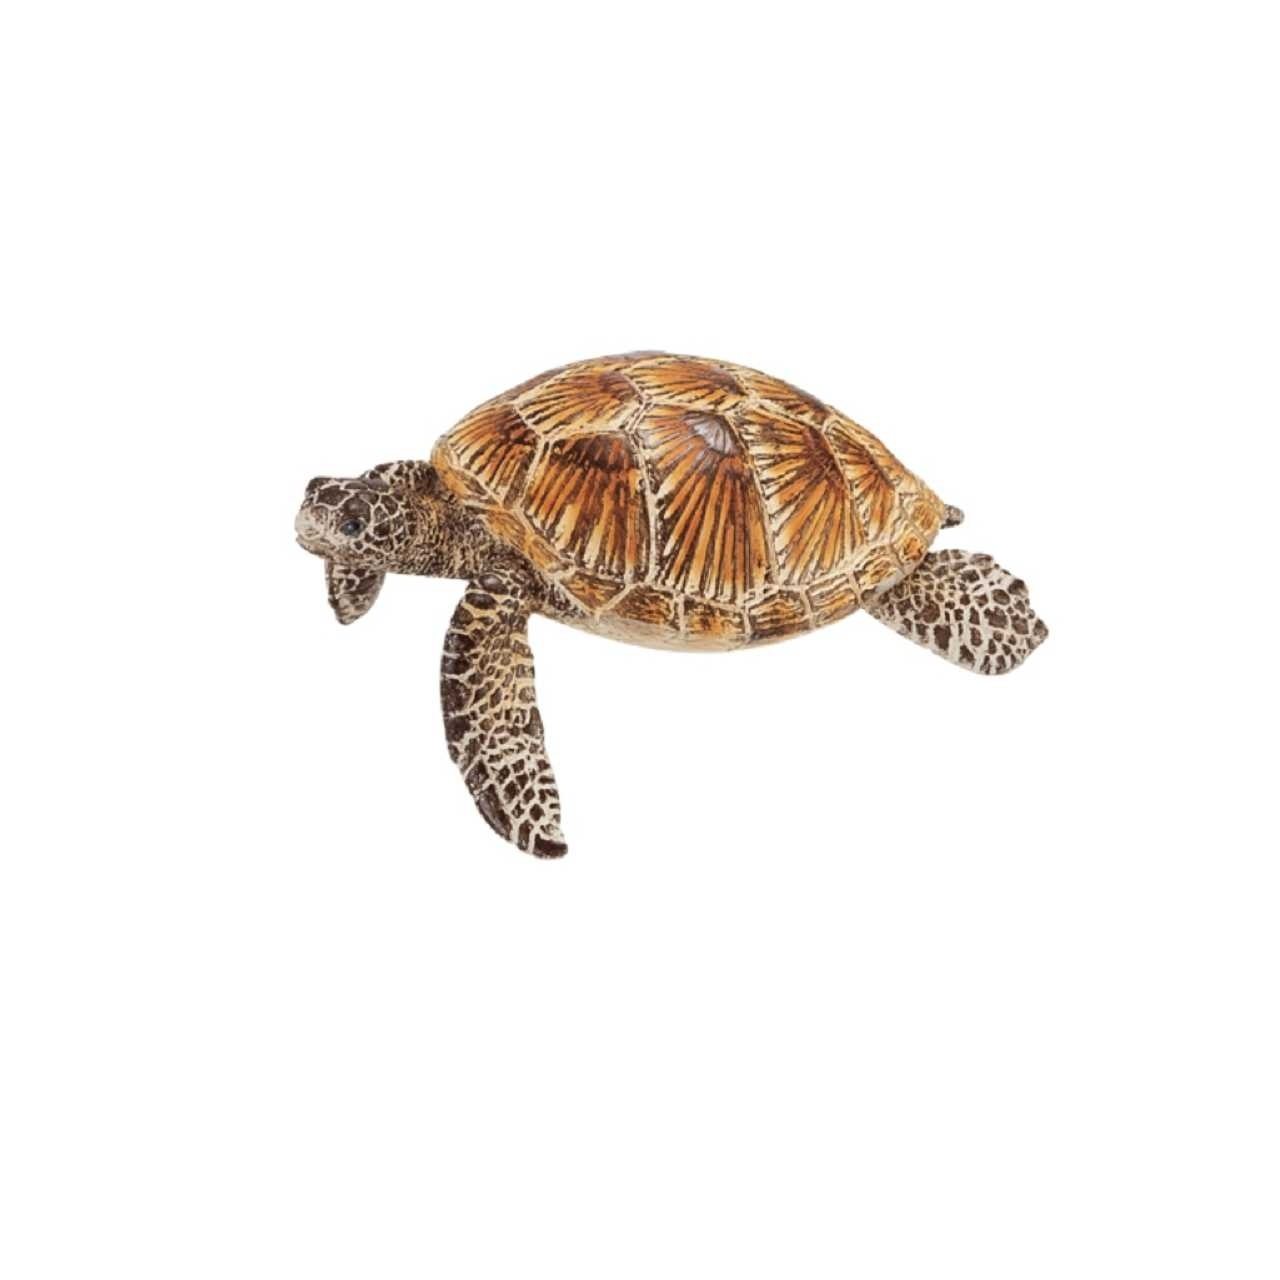 Schleich: Sea Turtle image